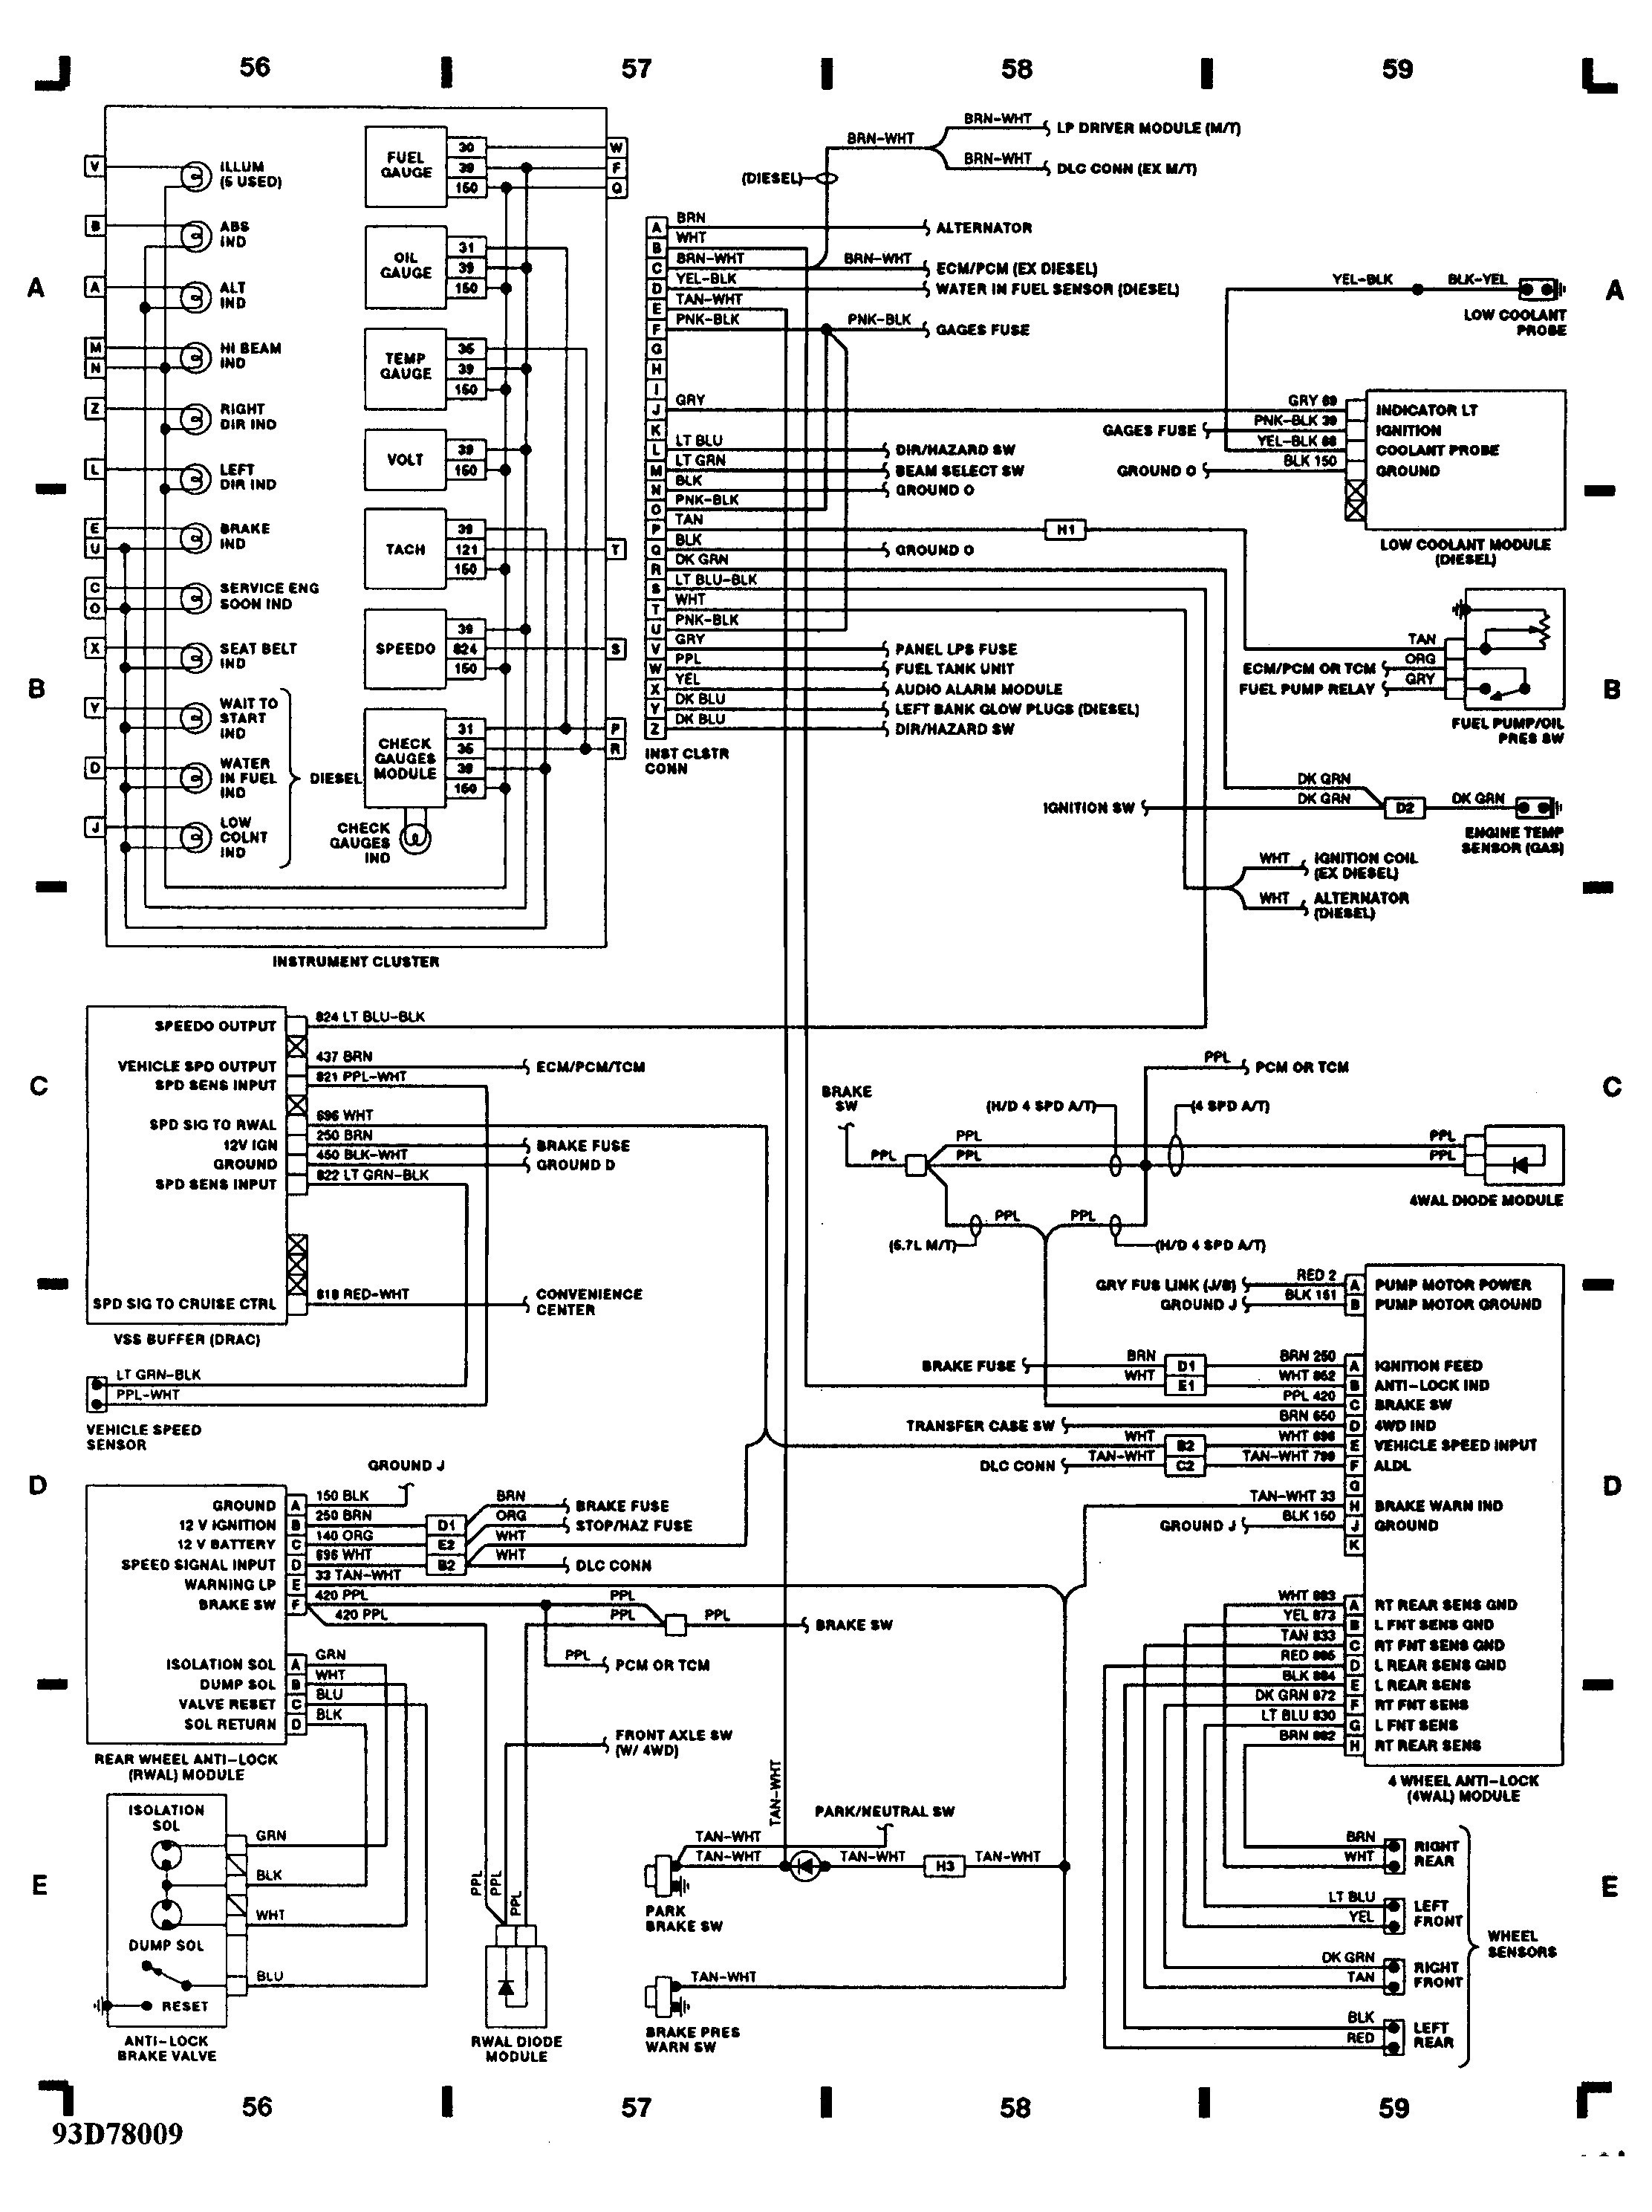 7 4 Marine Engine Wiring Harness - Great Engine Wiring Diagram ...  Chevy O Sensor Wiring Diagram on chevy distributor wiring diagram, chevy ignition wiring diagram, chevy 700r4 transmission wiring diagram, chevy throttle position sensor location, chevy coil wiring diagram, chevy s10 throttle body diagram, chevy towing wiring diagram, chevy brake light switch wiring diagram, chevy alternator wiring diagram, chevy speedometer wiring diagram, chevy 7 pin wiring diagram, chevy fuel wiring diagram, chevy silverado throttle position sensor, chevy trailer wiring diagram, chevy wiring harness diagram, chevy maf sensor wiring diagram, chevy headlight switch wiring diagram, chevy engine wiring diagram, chevy brake controller wiring diagram, chevy truck wiring diagram,